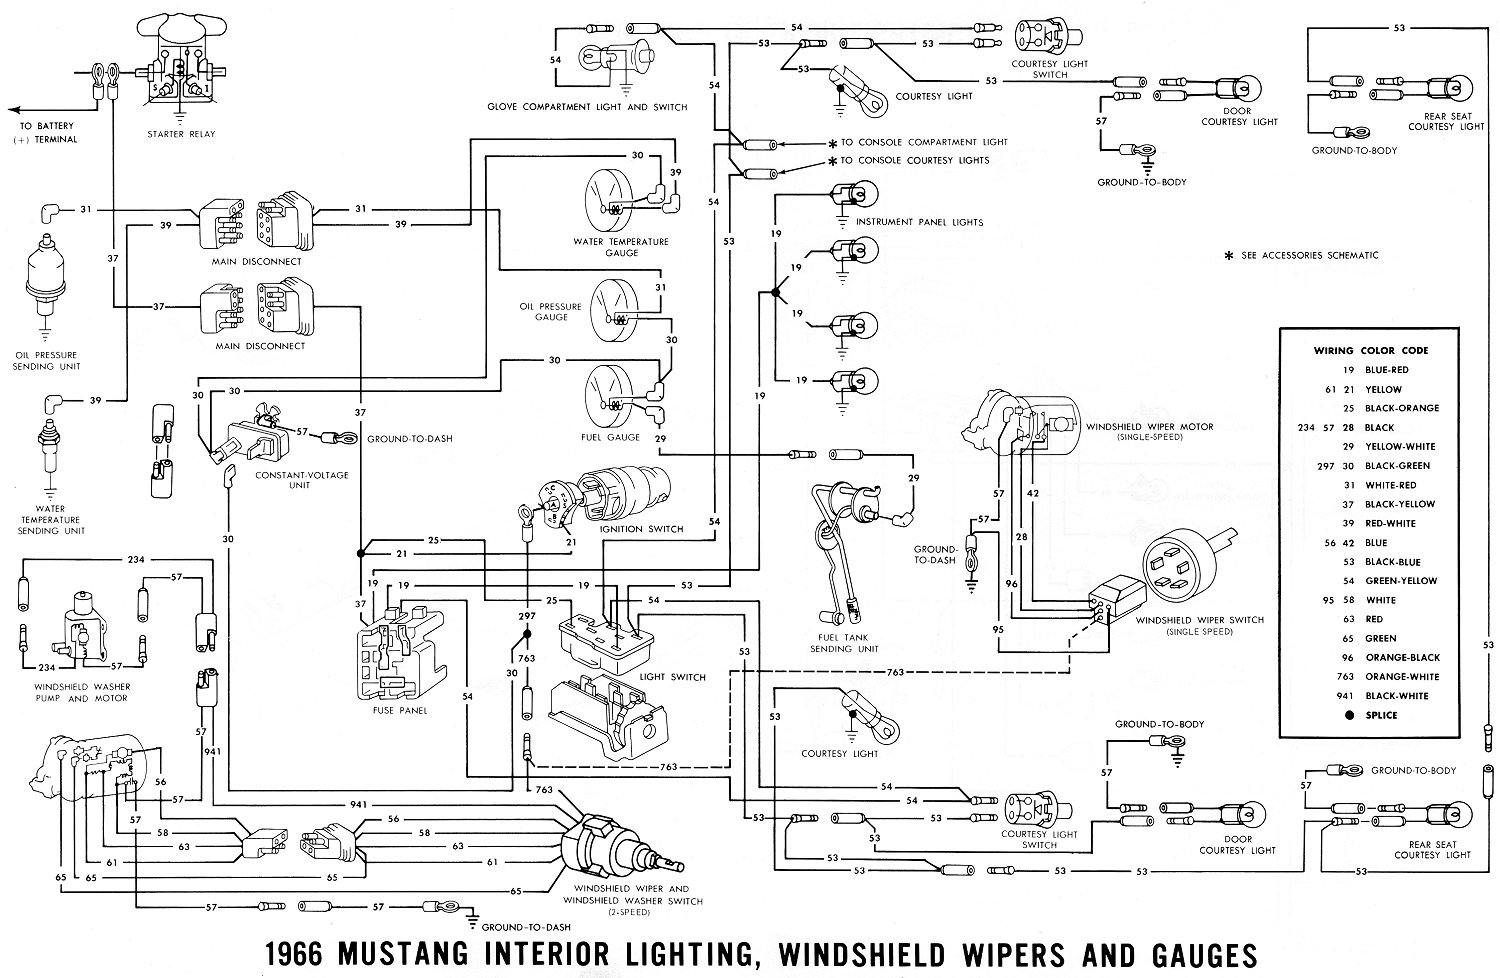 66inter1 1966 mustang wiring diagrams average joe restoration 68 mustang headlight wiring diagram at readyjetset.co